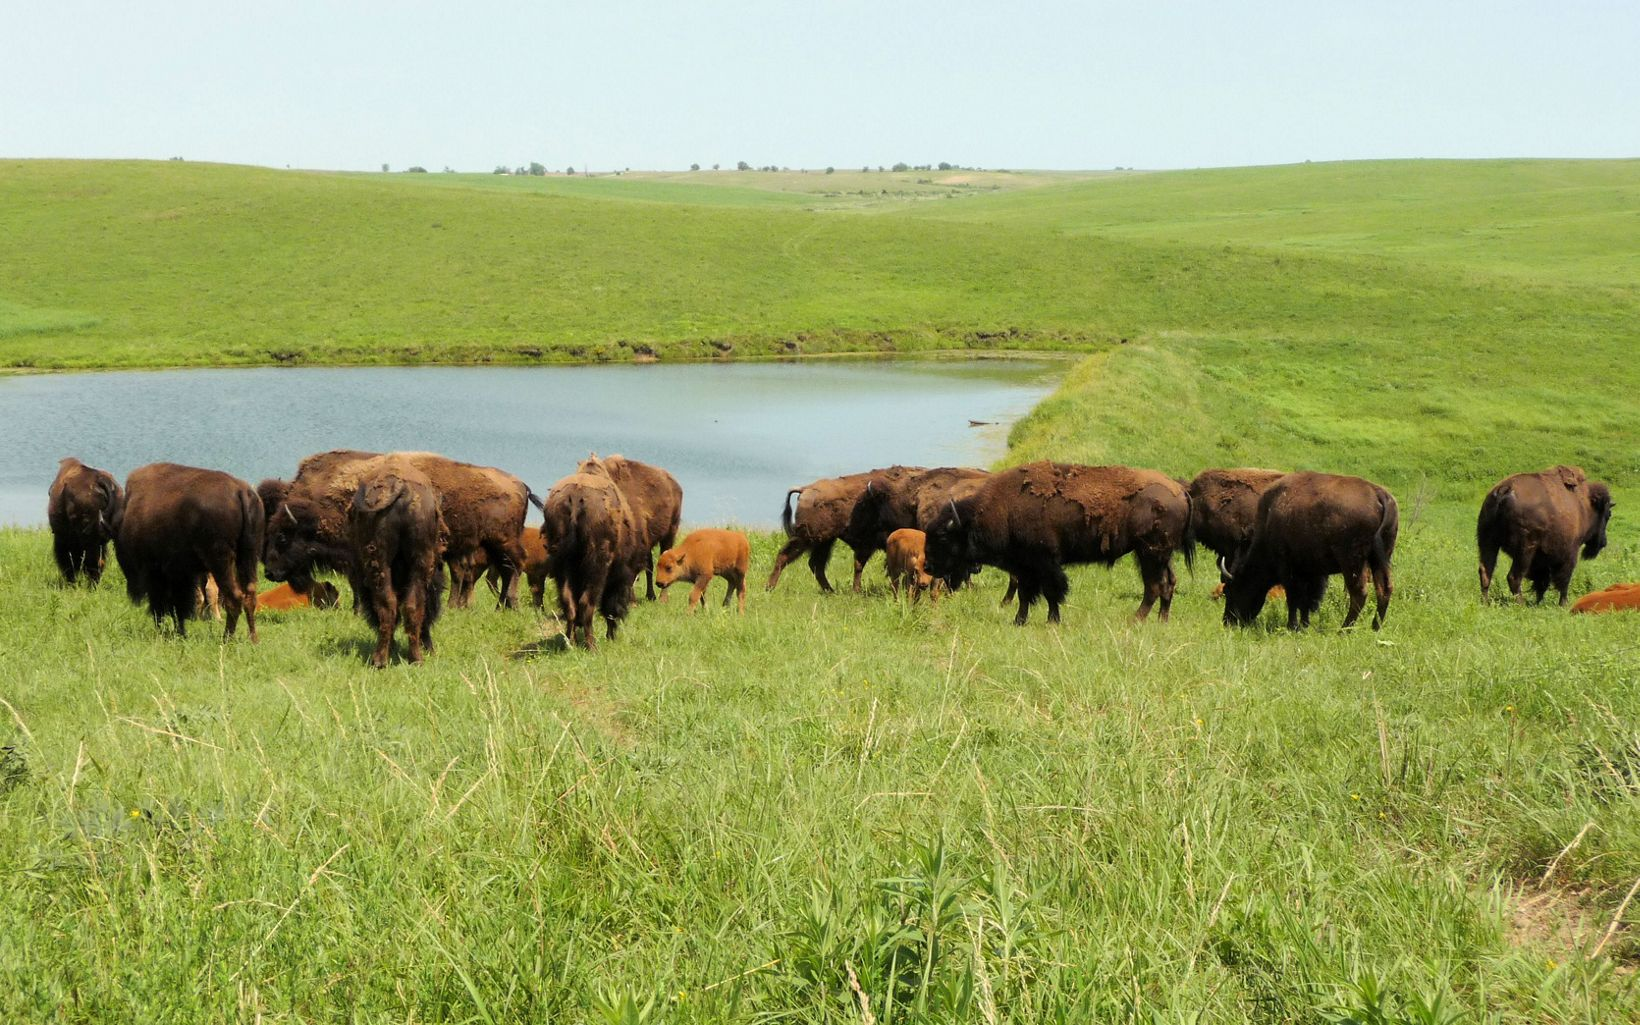 A herd of bison on the bright green prairie